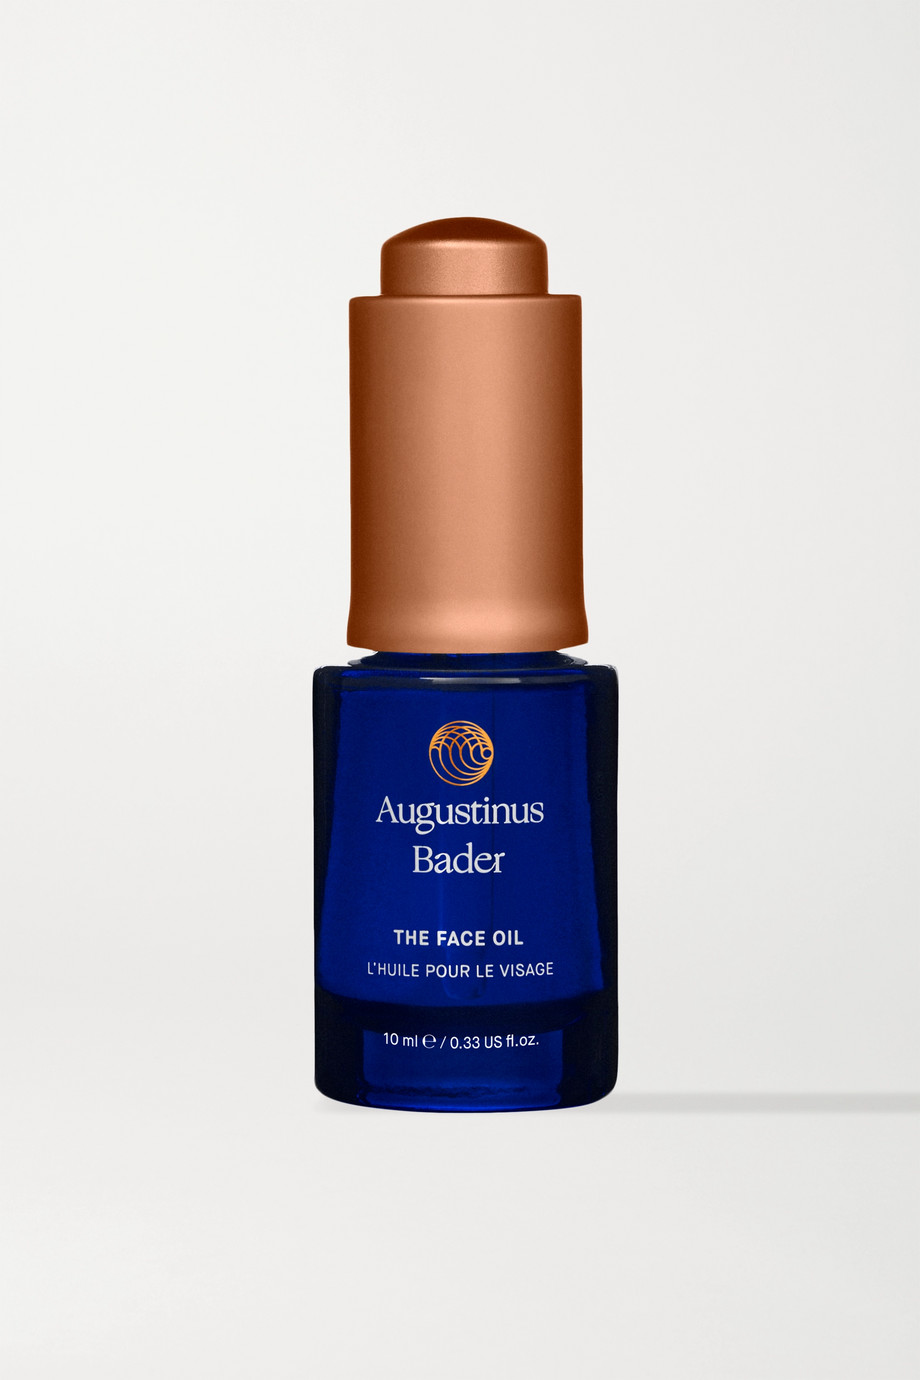 AUGUSTINUS BADER The Face Oil, 10ml